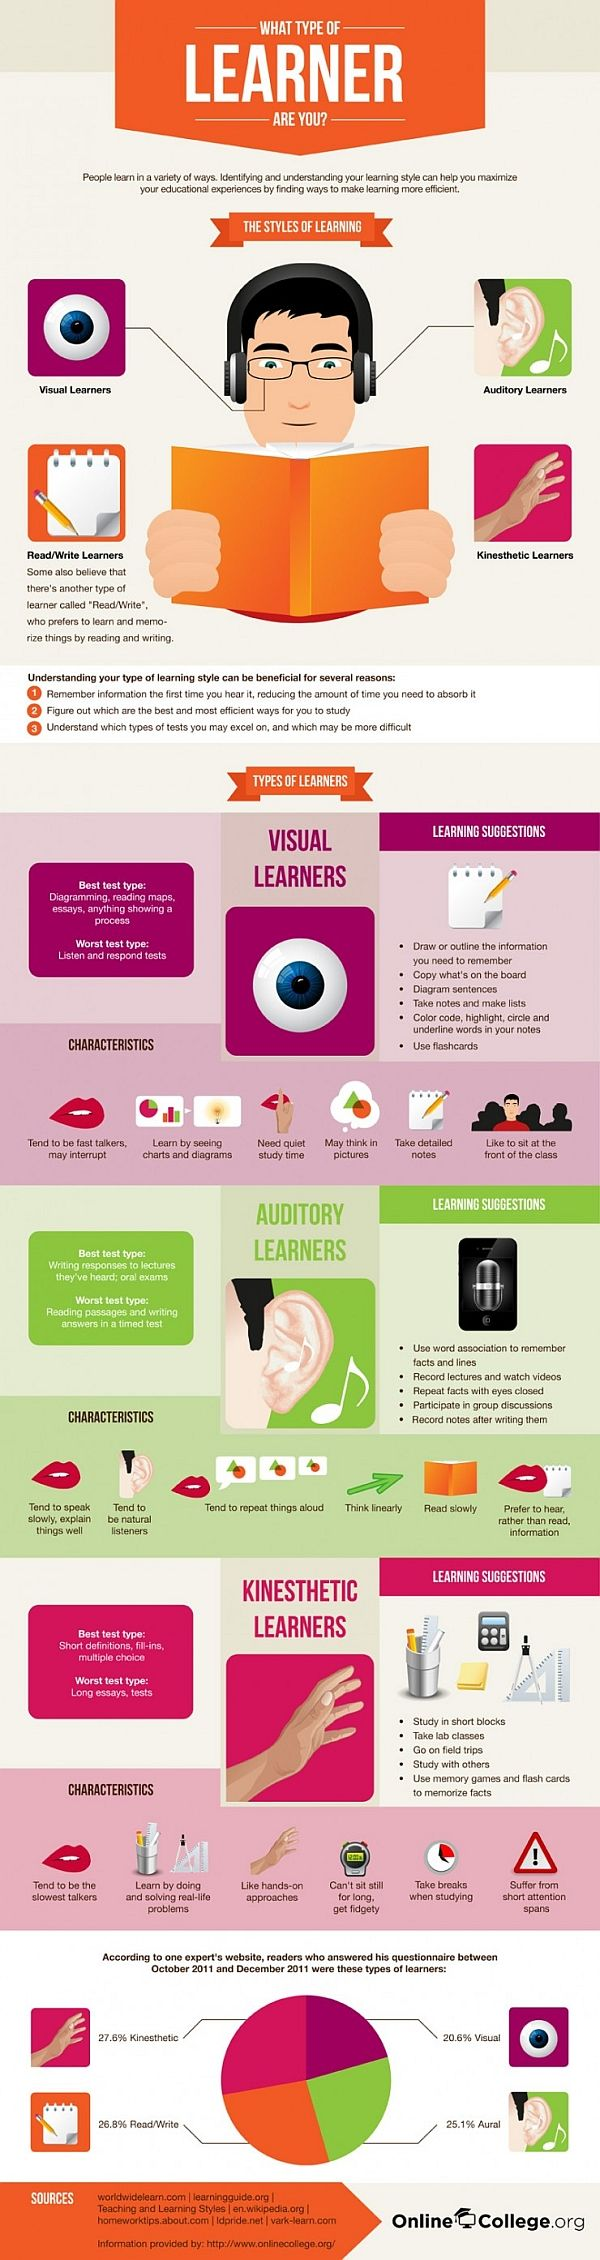 What-Type-of-Learner-are-You-infographic.jpg 600×2 260 pikseli